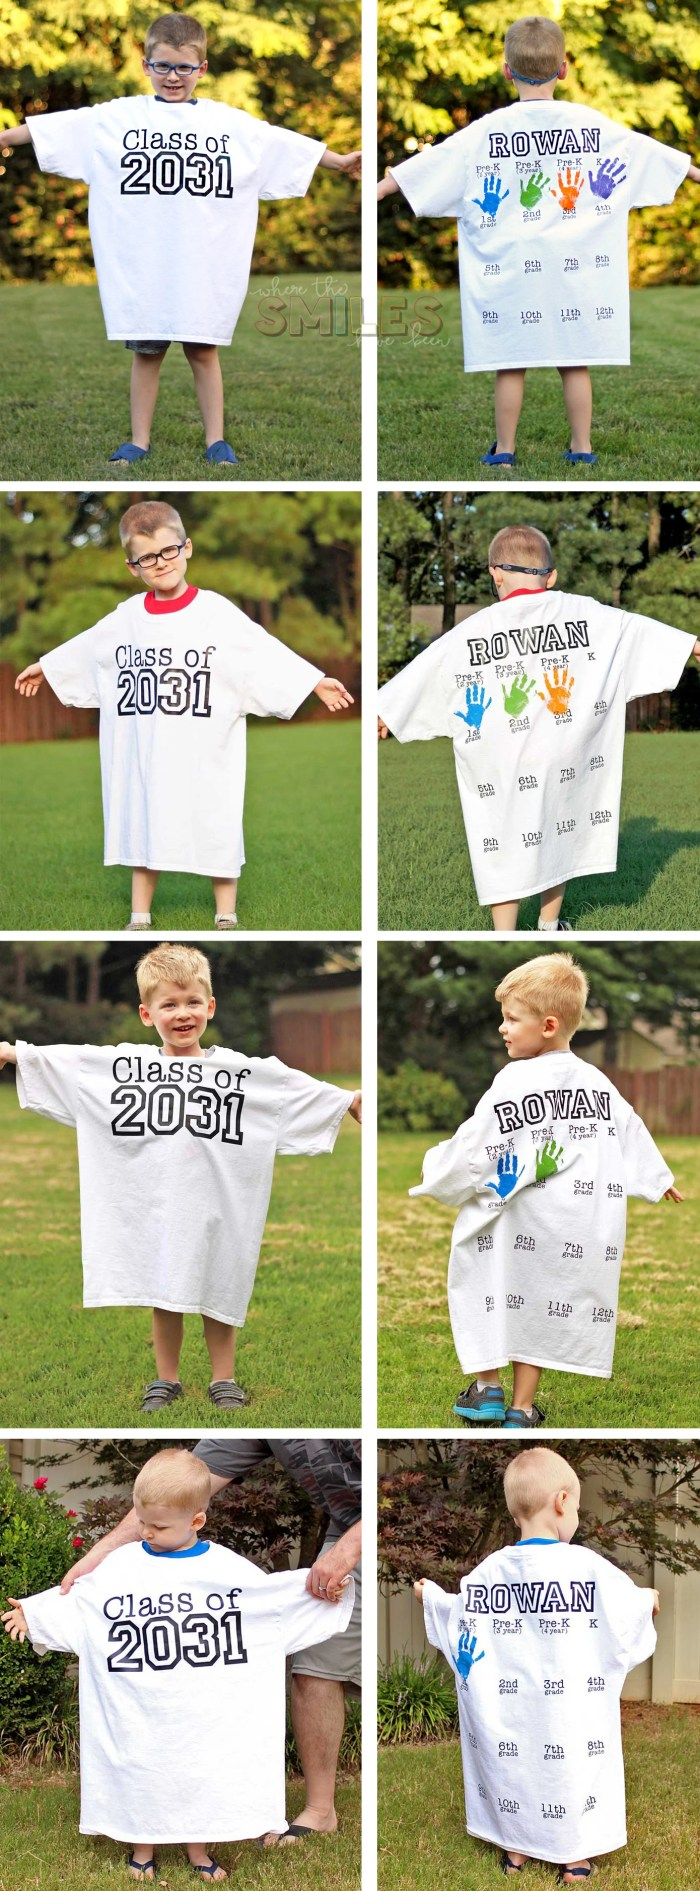 Rowan's Back-to-School Shirt with Handprints: Kindergarten Update! | Where The Smiles Have Been #backtoschool #firstdayofschool #photoprop #keepsake #graduation #school